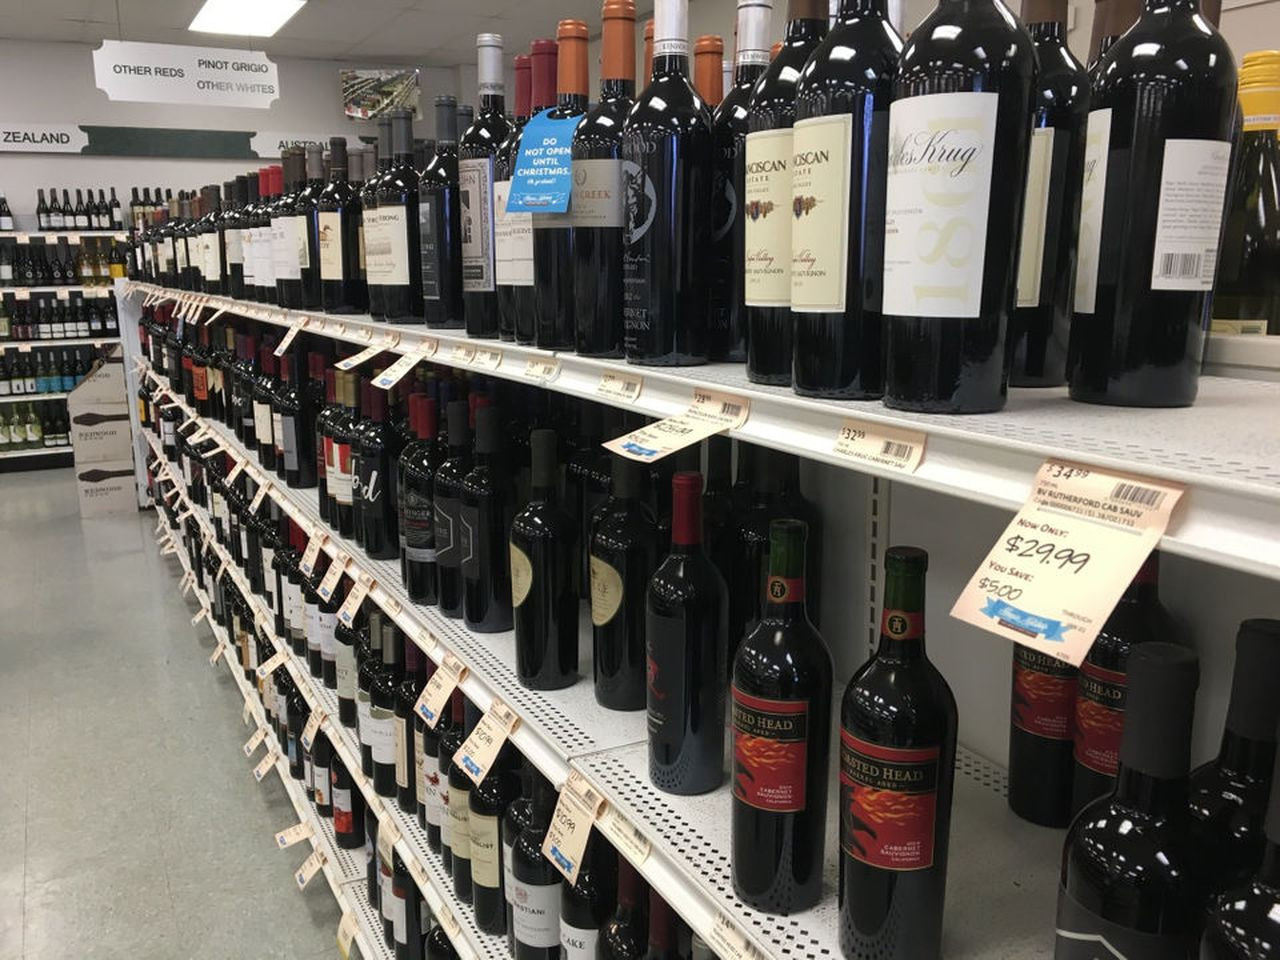 Pennsylvania Liquor Control Board Collection Plcb Stores that sold the Most Least Booze and Wine In 2017